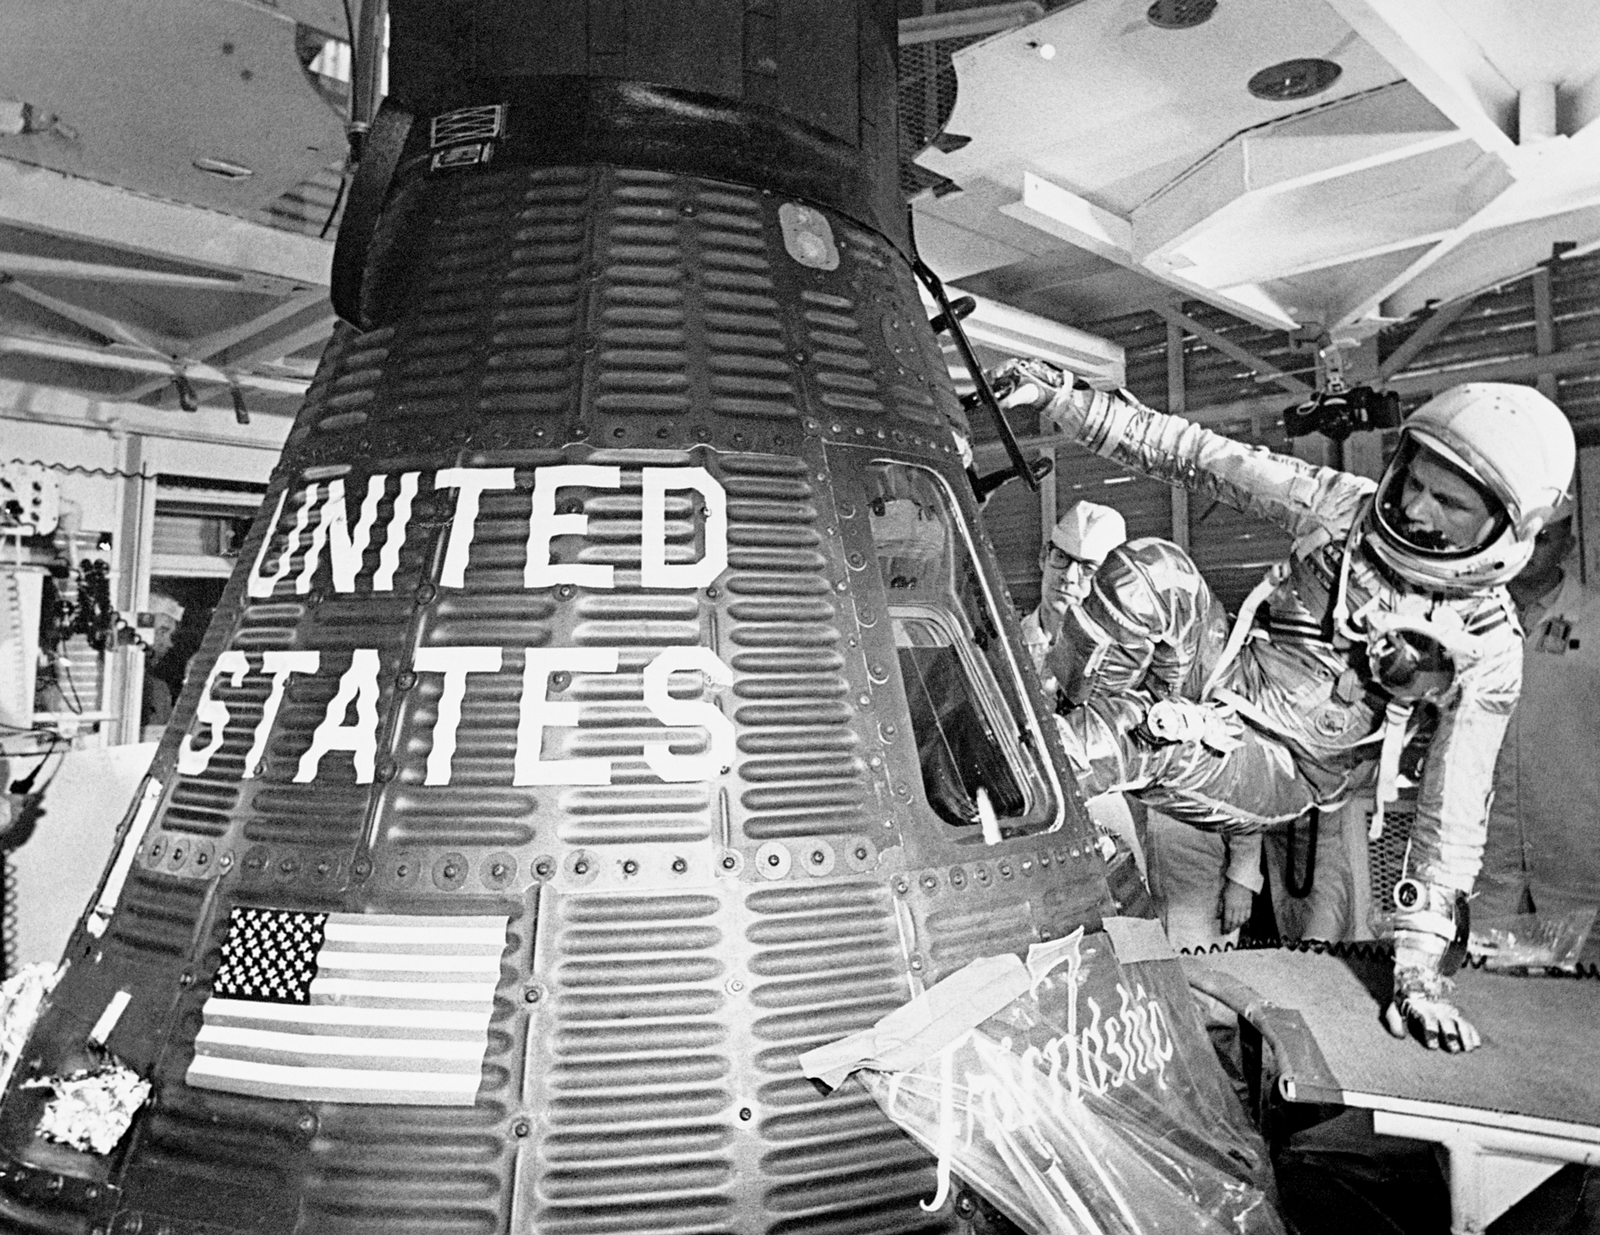 John Glenn boards the Friendship 7 capsule to become the first American to orbit the earth, during the Mercury-Atlas 6) mission, on Feb. 20, 1962. A temporary handle bolted to the outside of the spacecraft made the clumsy maneuver a little easier.